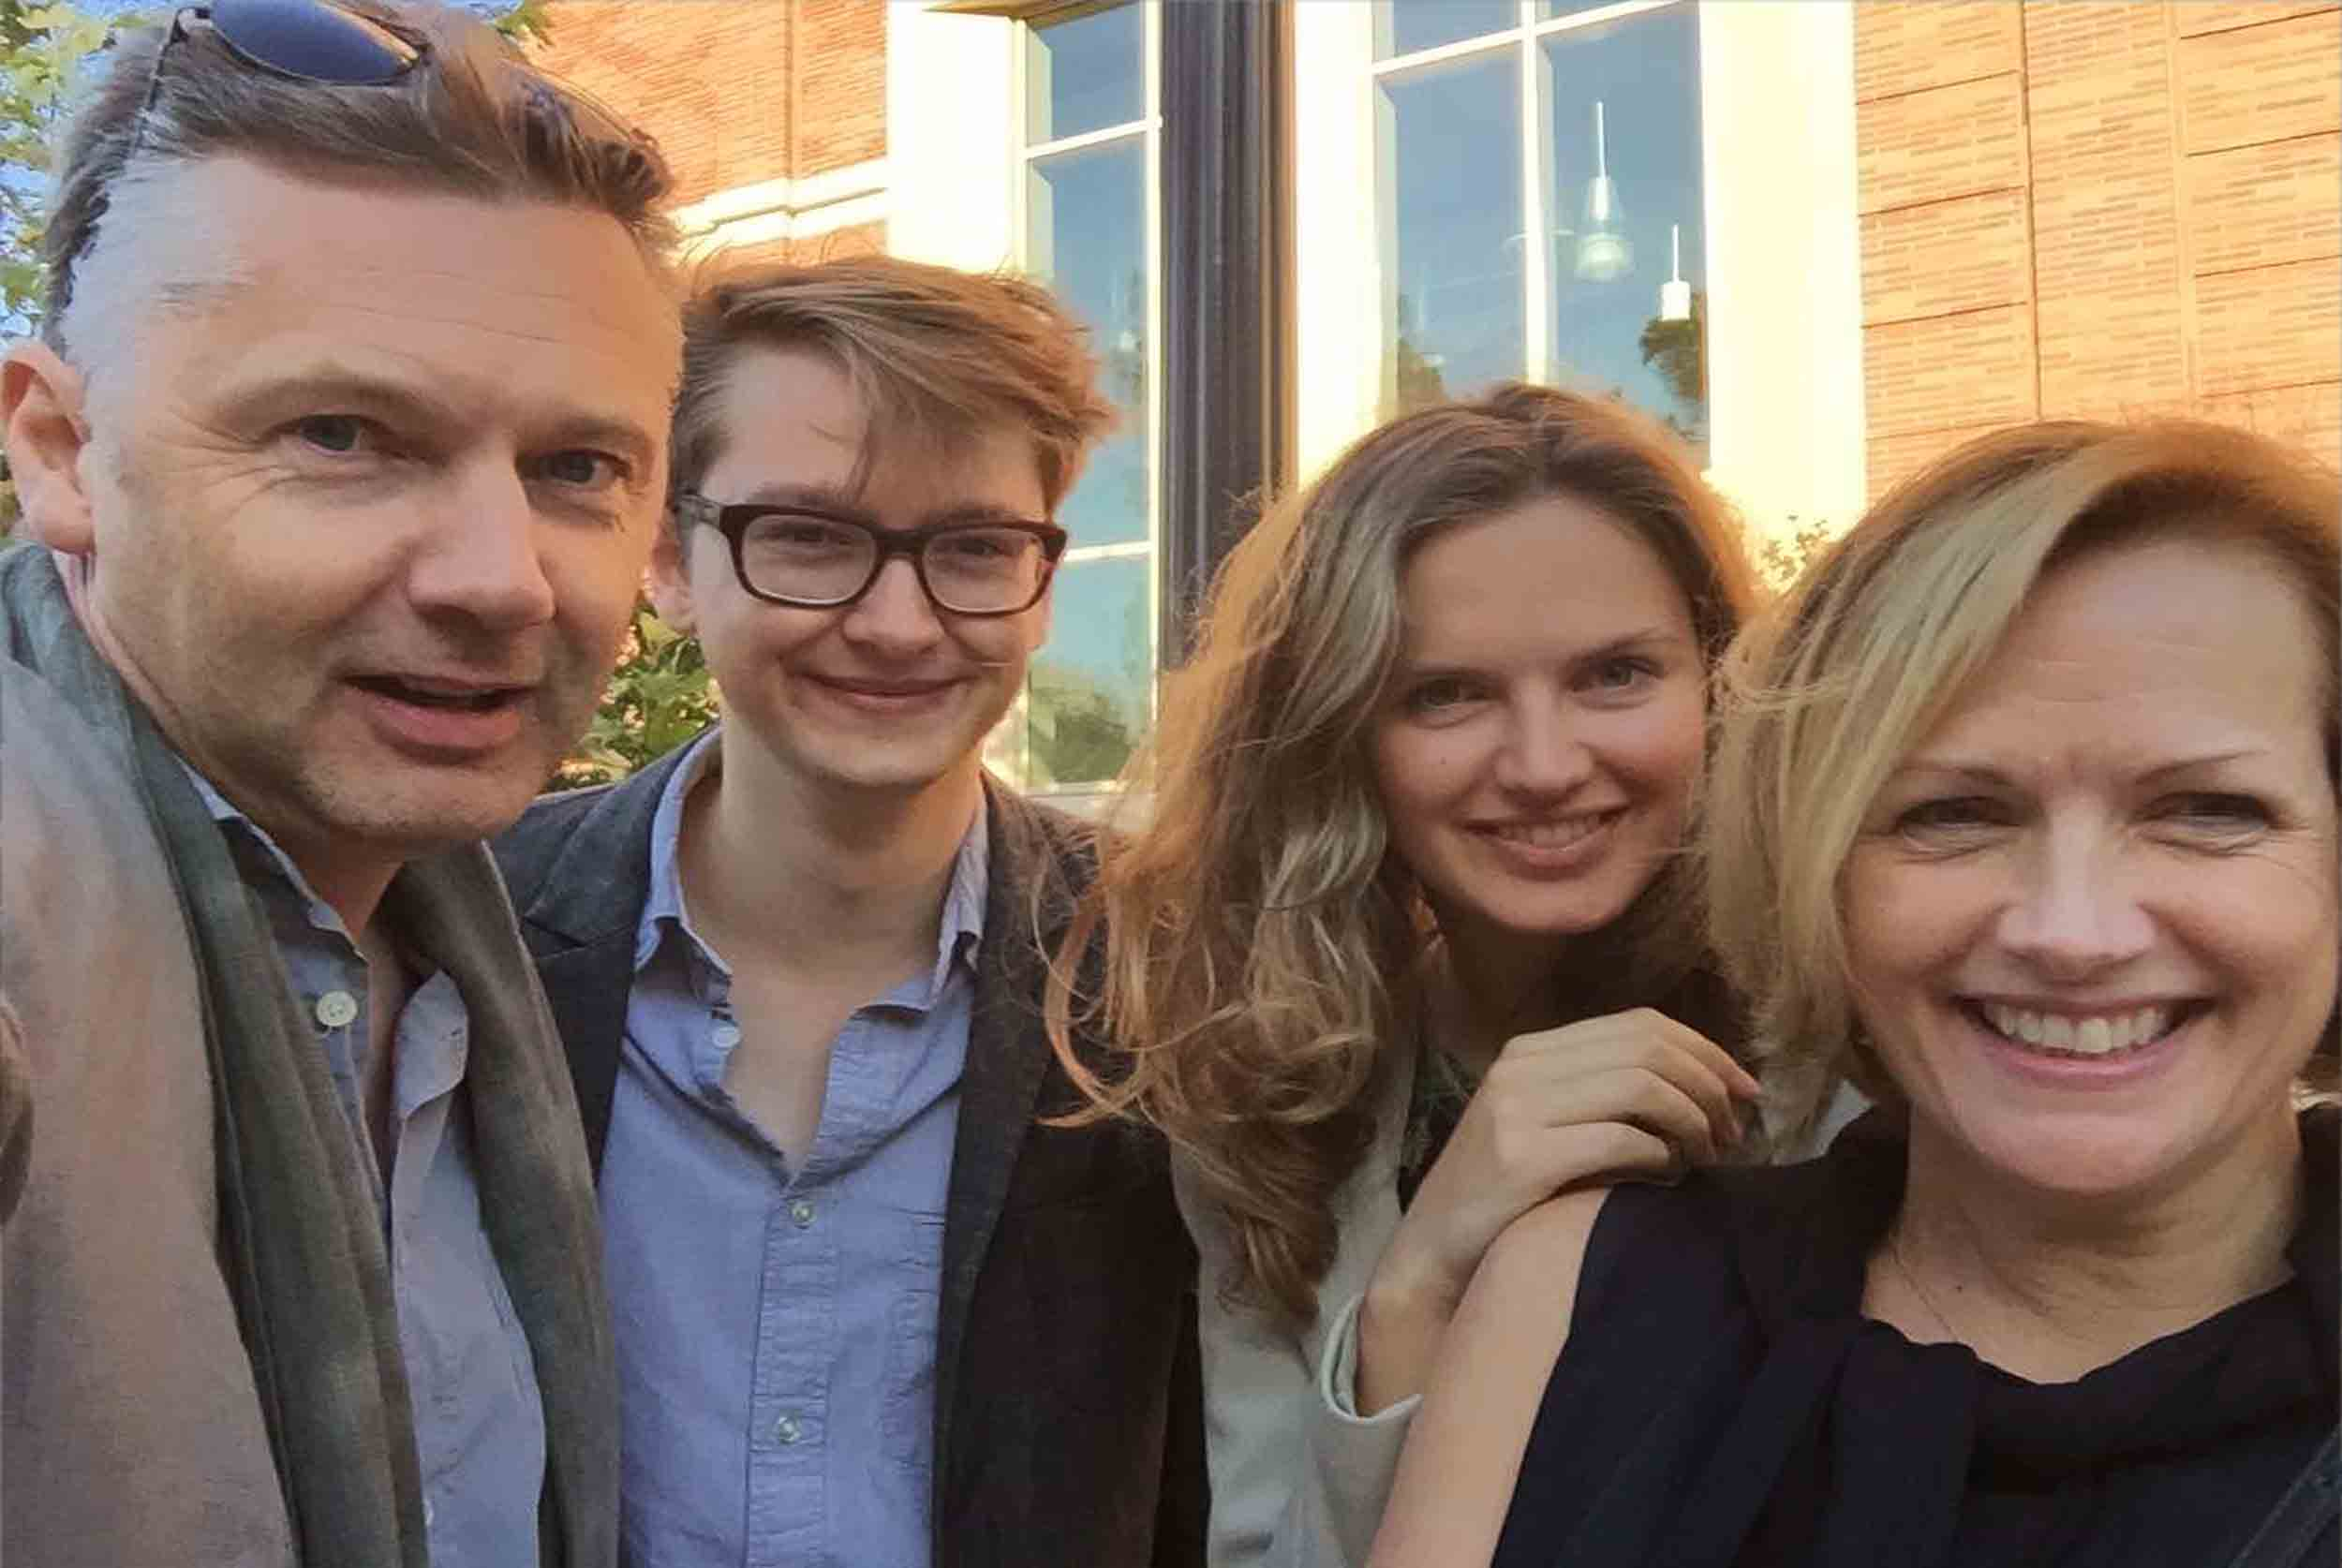 Andrew, Ollie, Flo and Louise